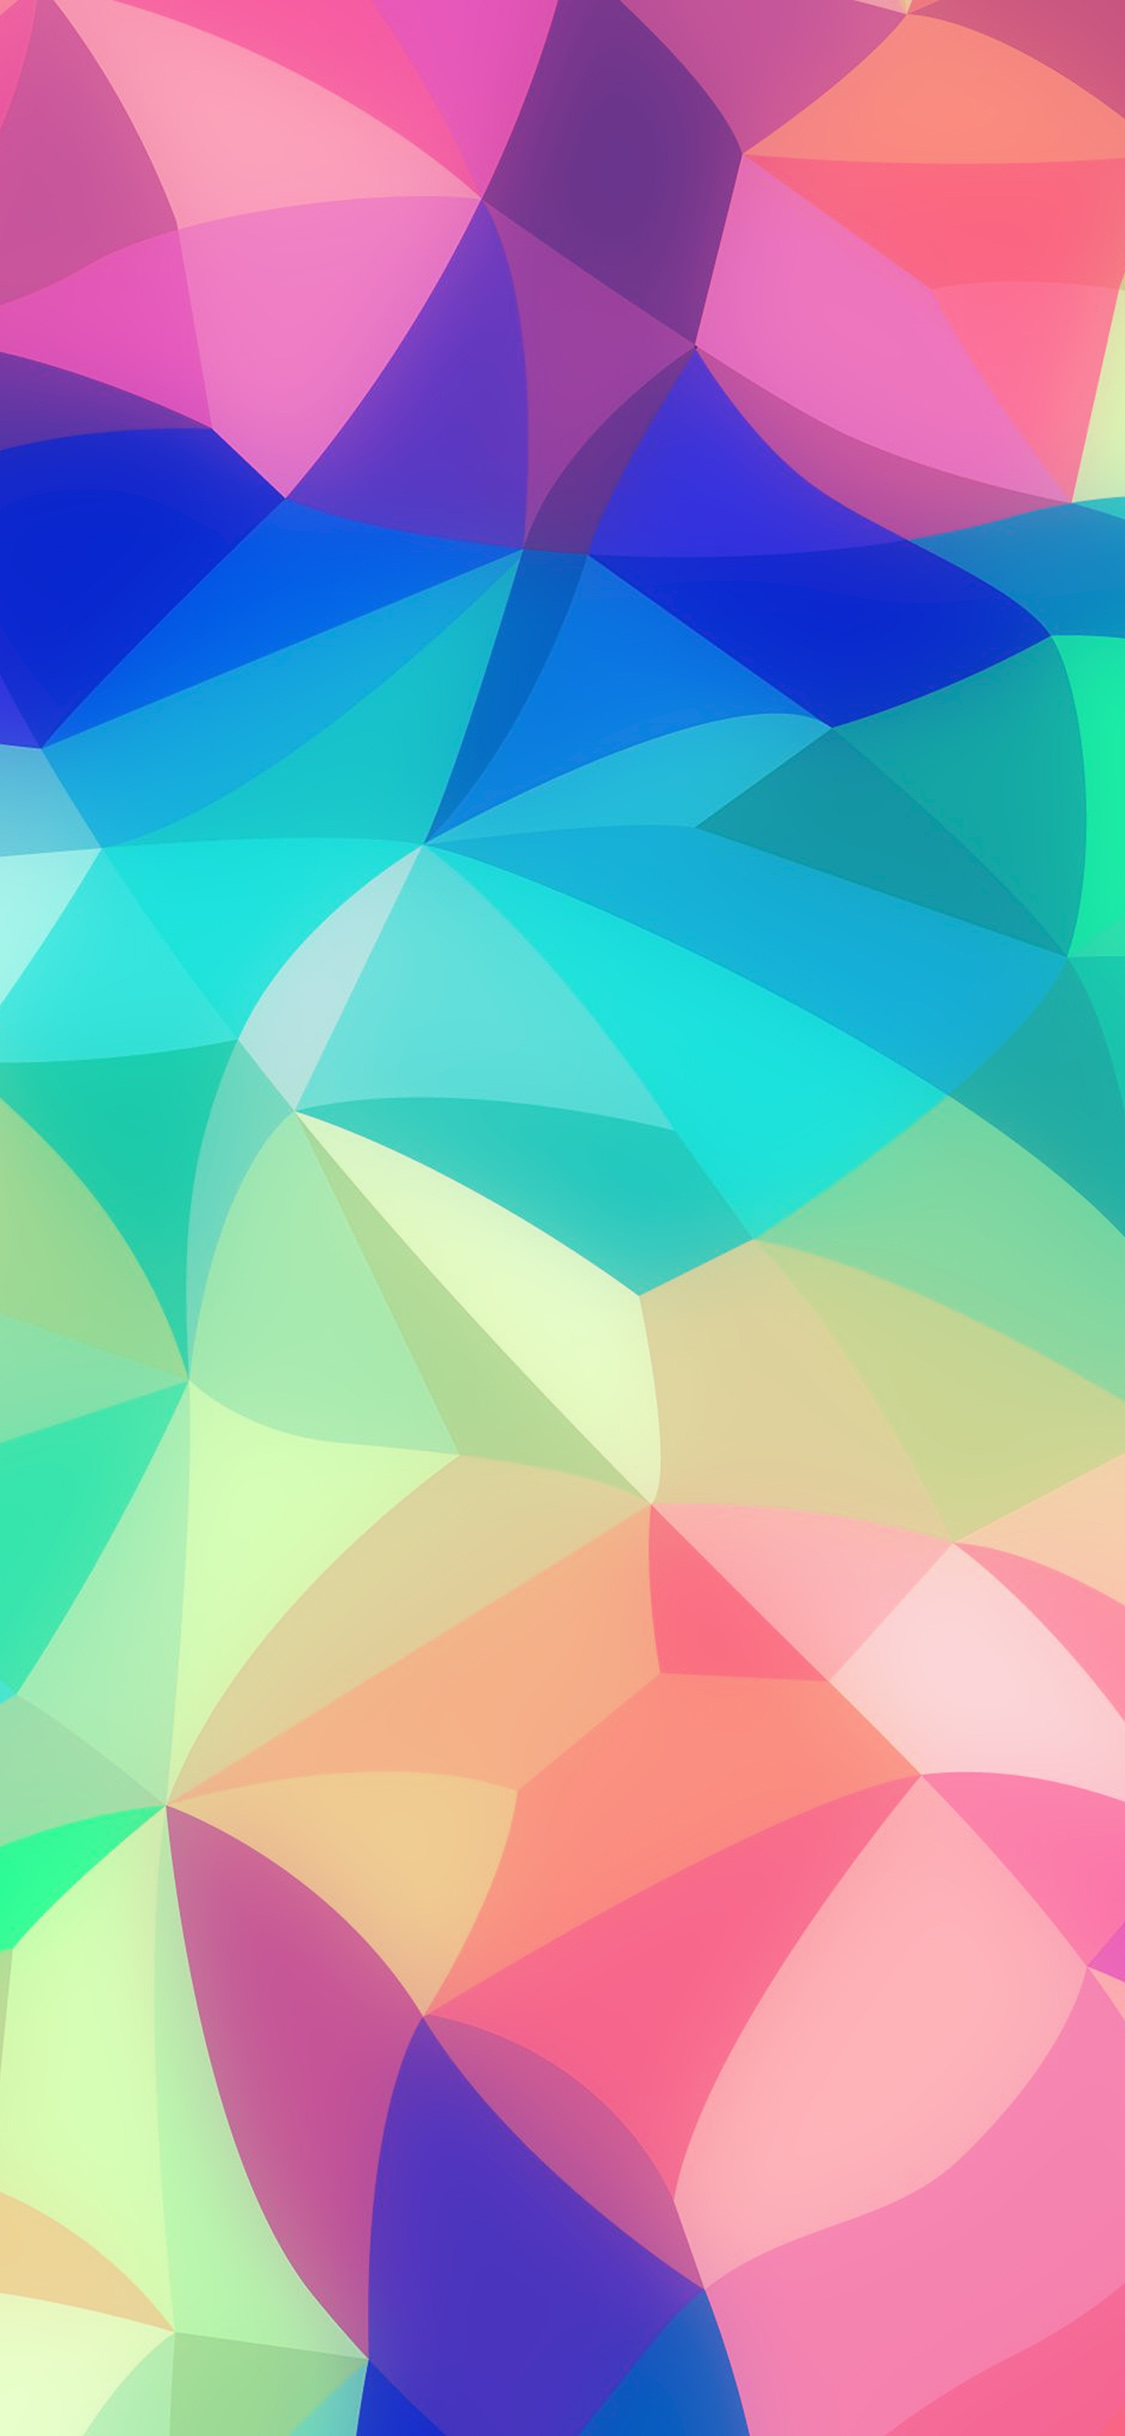 vk41-rainbow-abstract-colors-pastel-soft-pattern-wallpaper